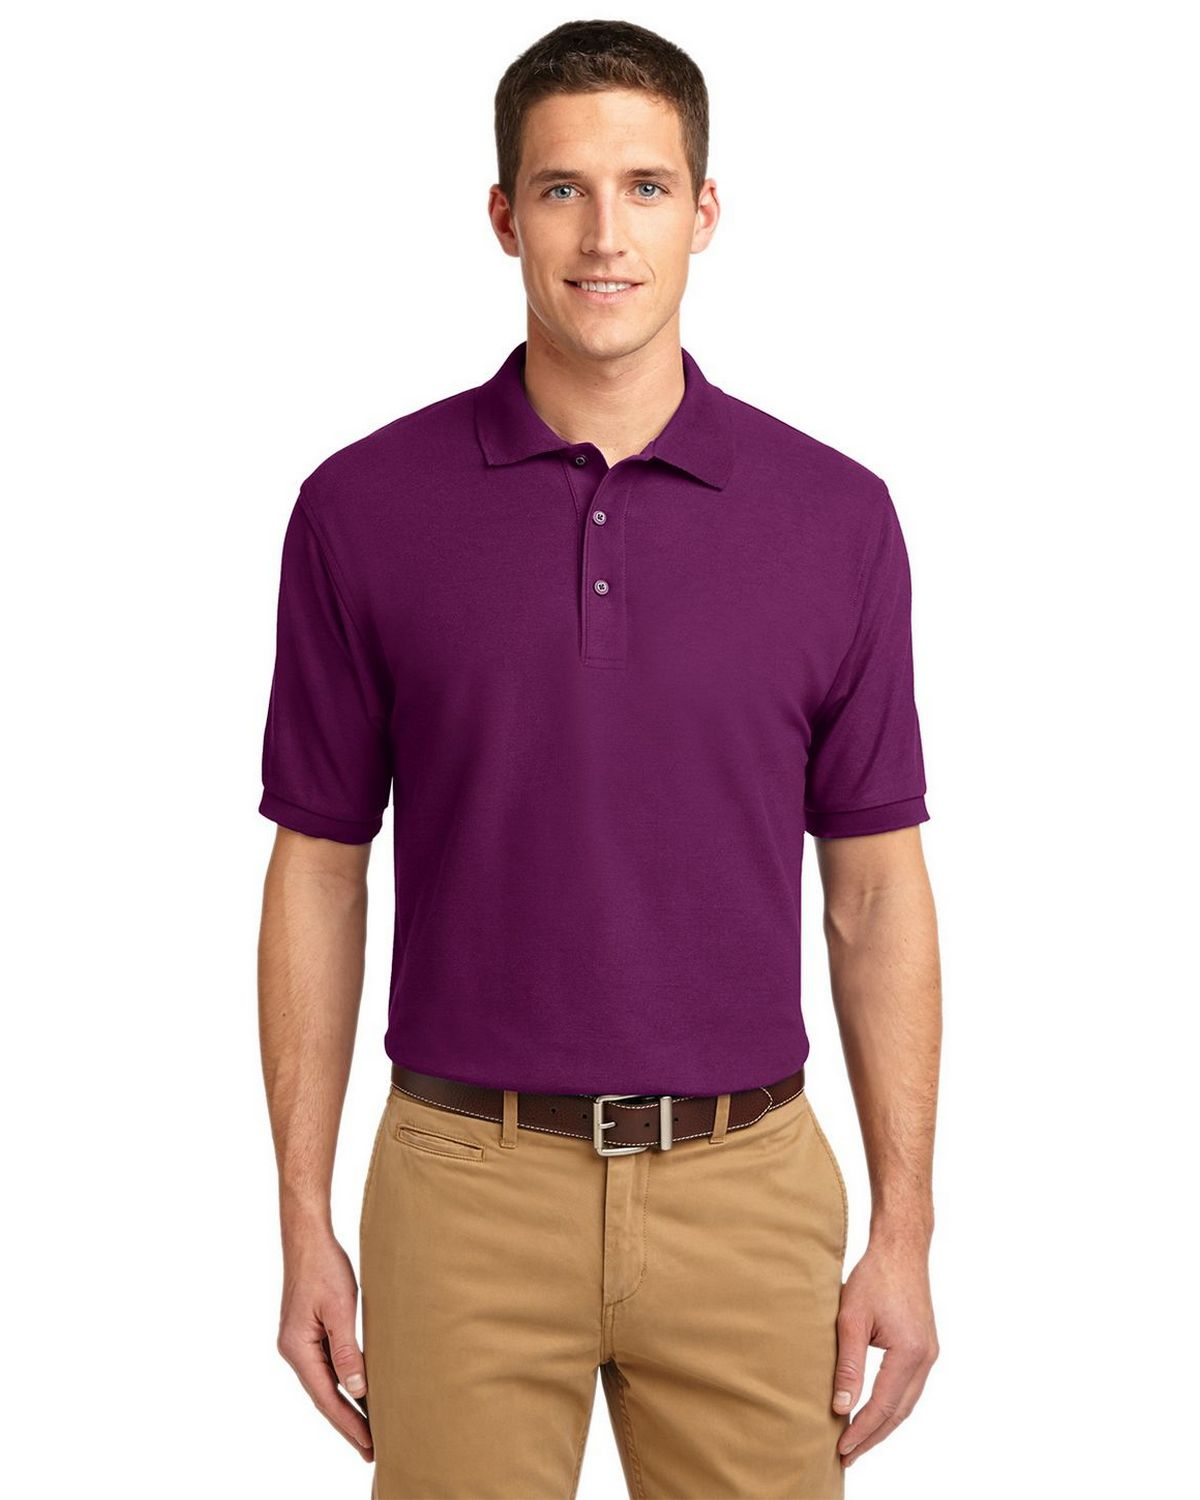 Port Authority K500 Men's Silk Touch Polo - Deep Berry - XS #silk